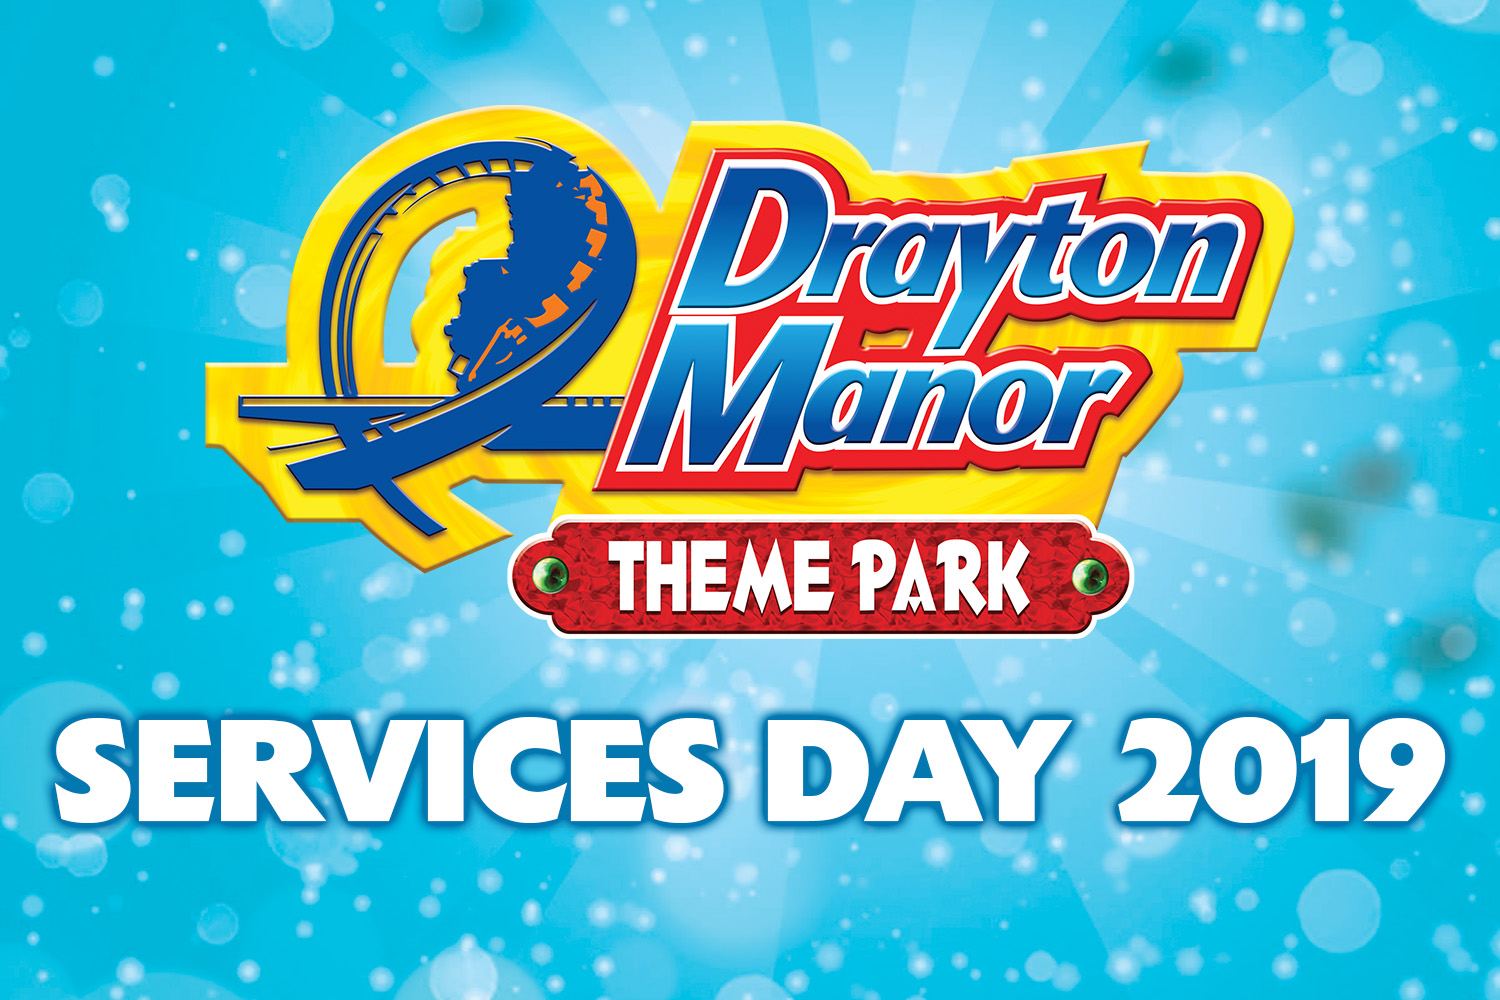 Drayton Manor Theme Park Services Day